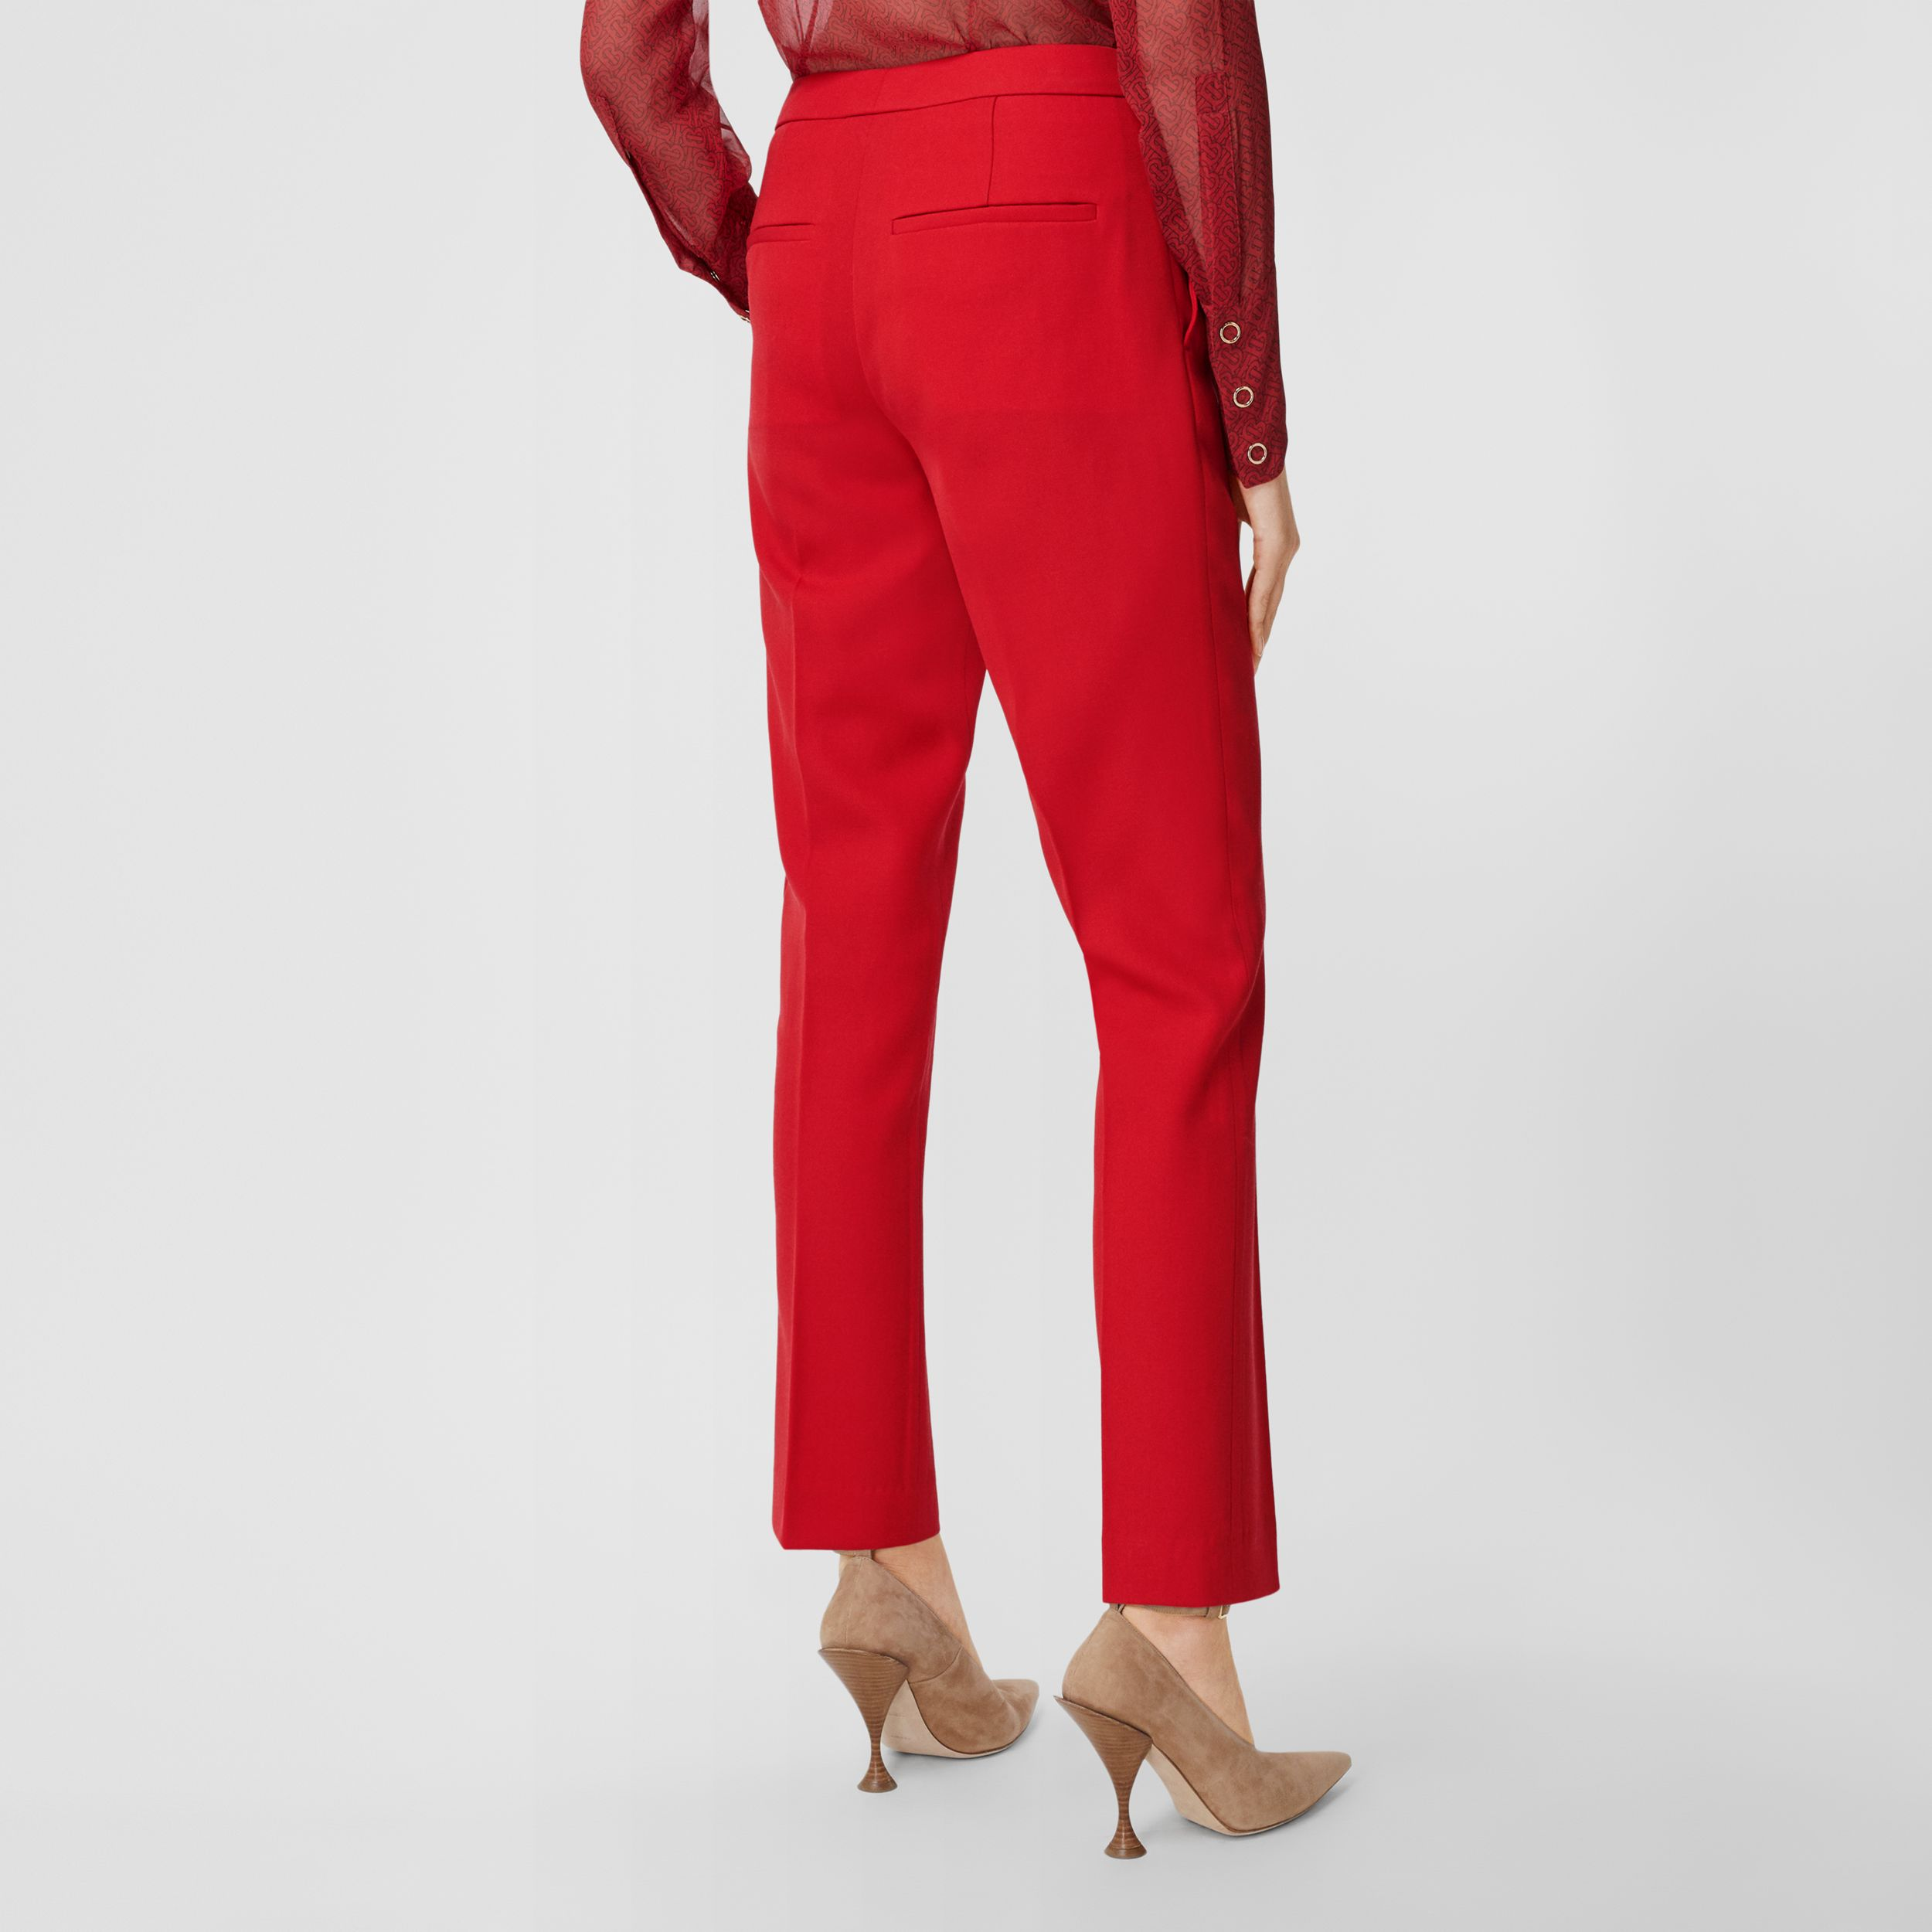 Wool Tailored Trousers in Bright Red - Women | Burberry Australia - 3